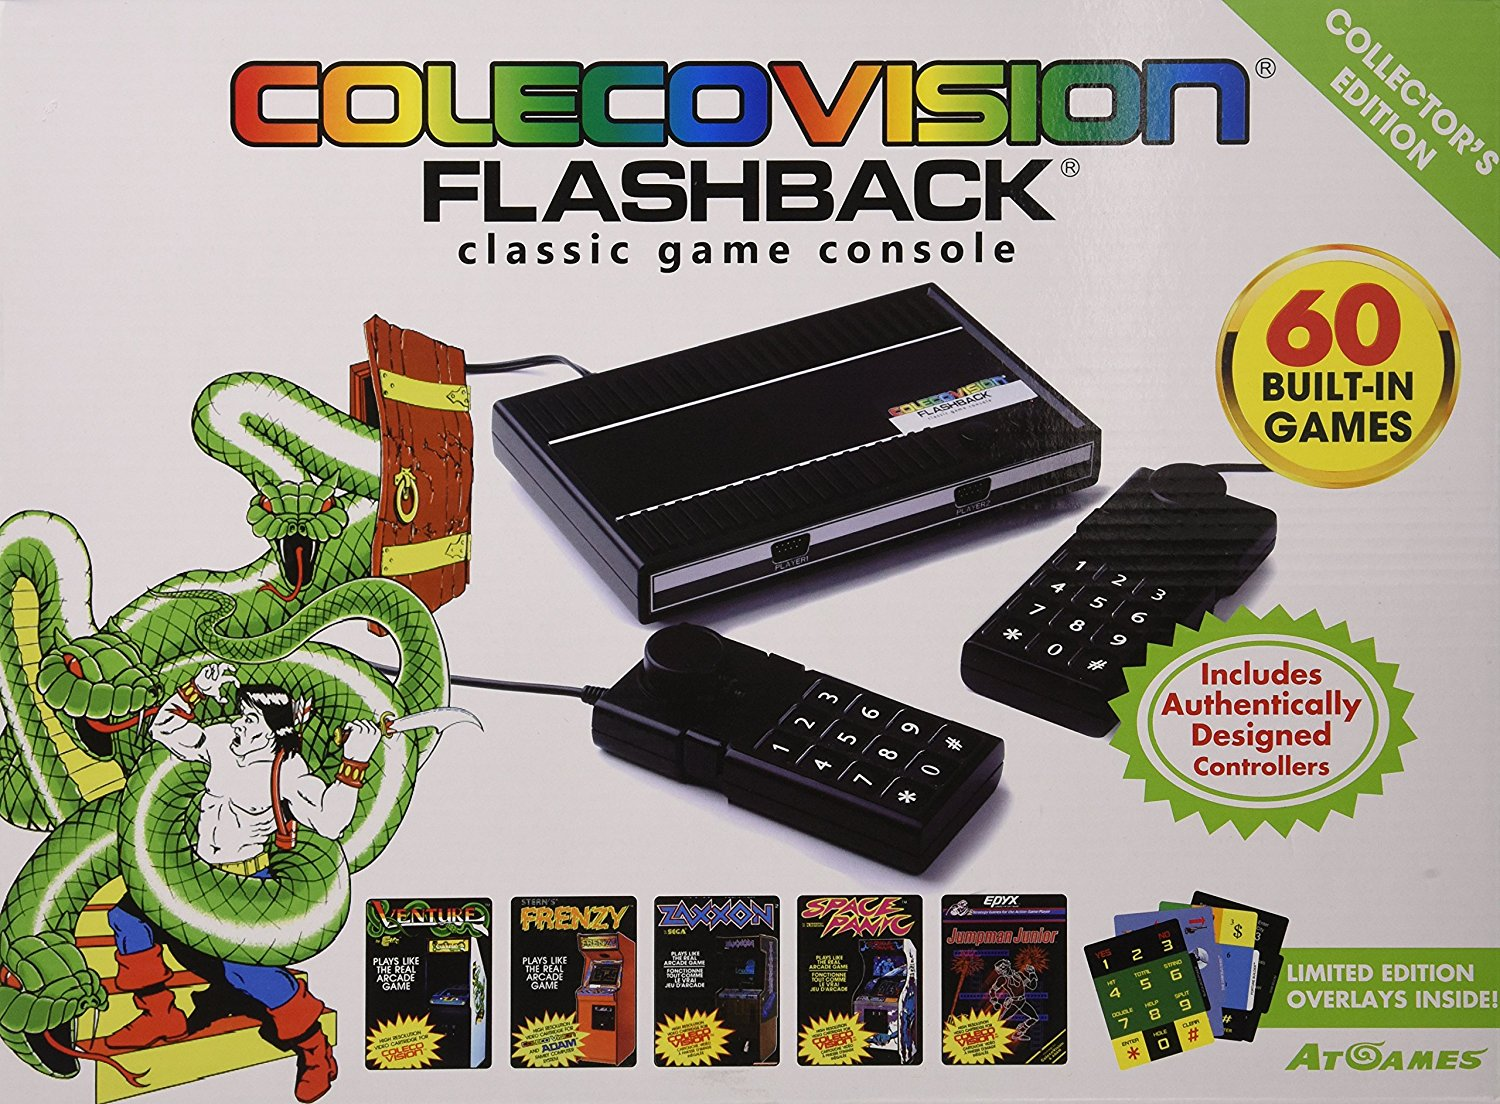 Nerdly Pleasures: Old Coleco or New Coleco : Nostalgia or